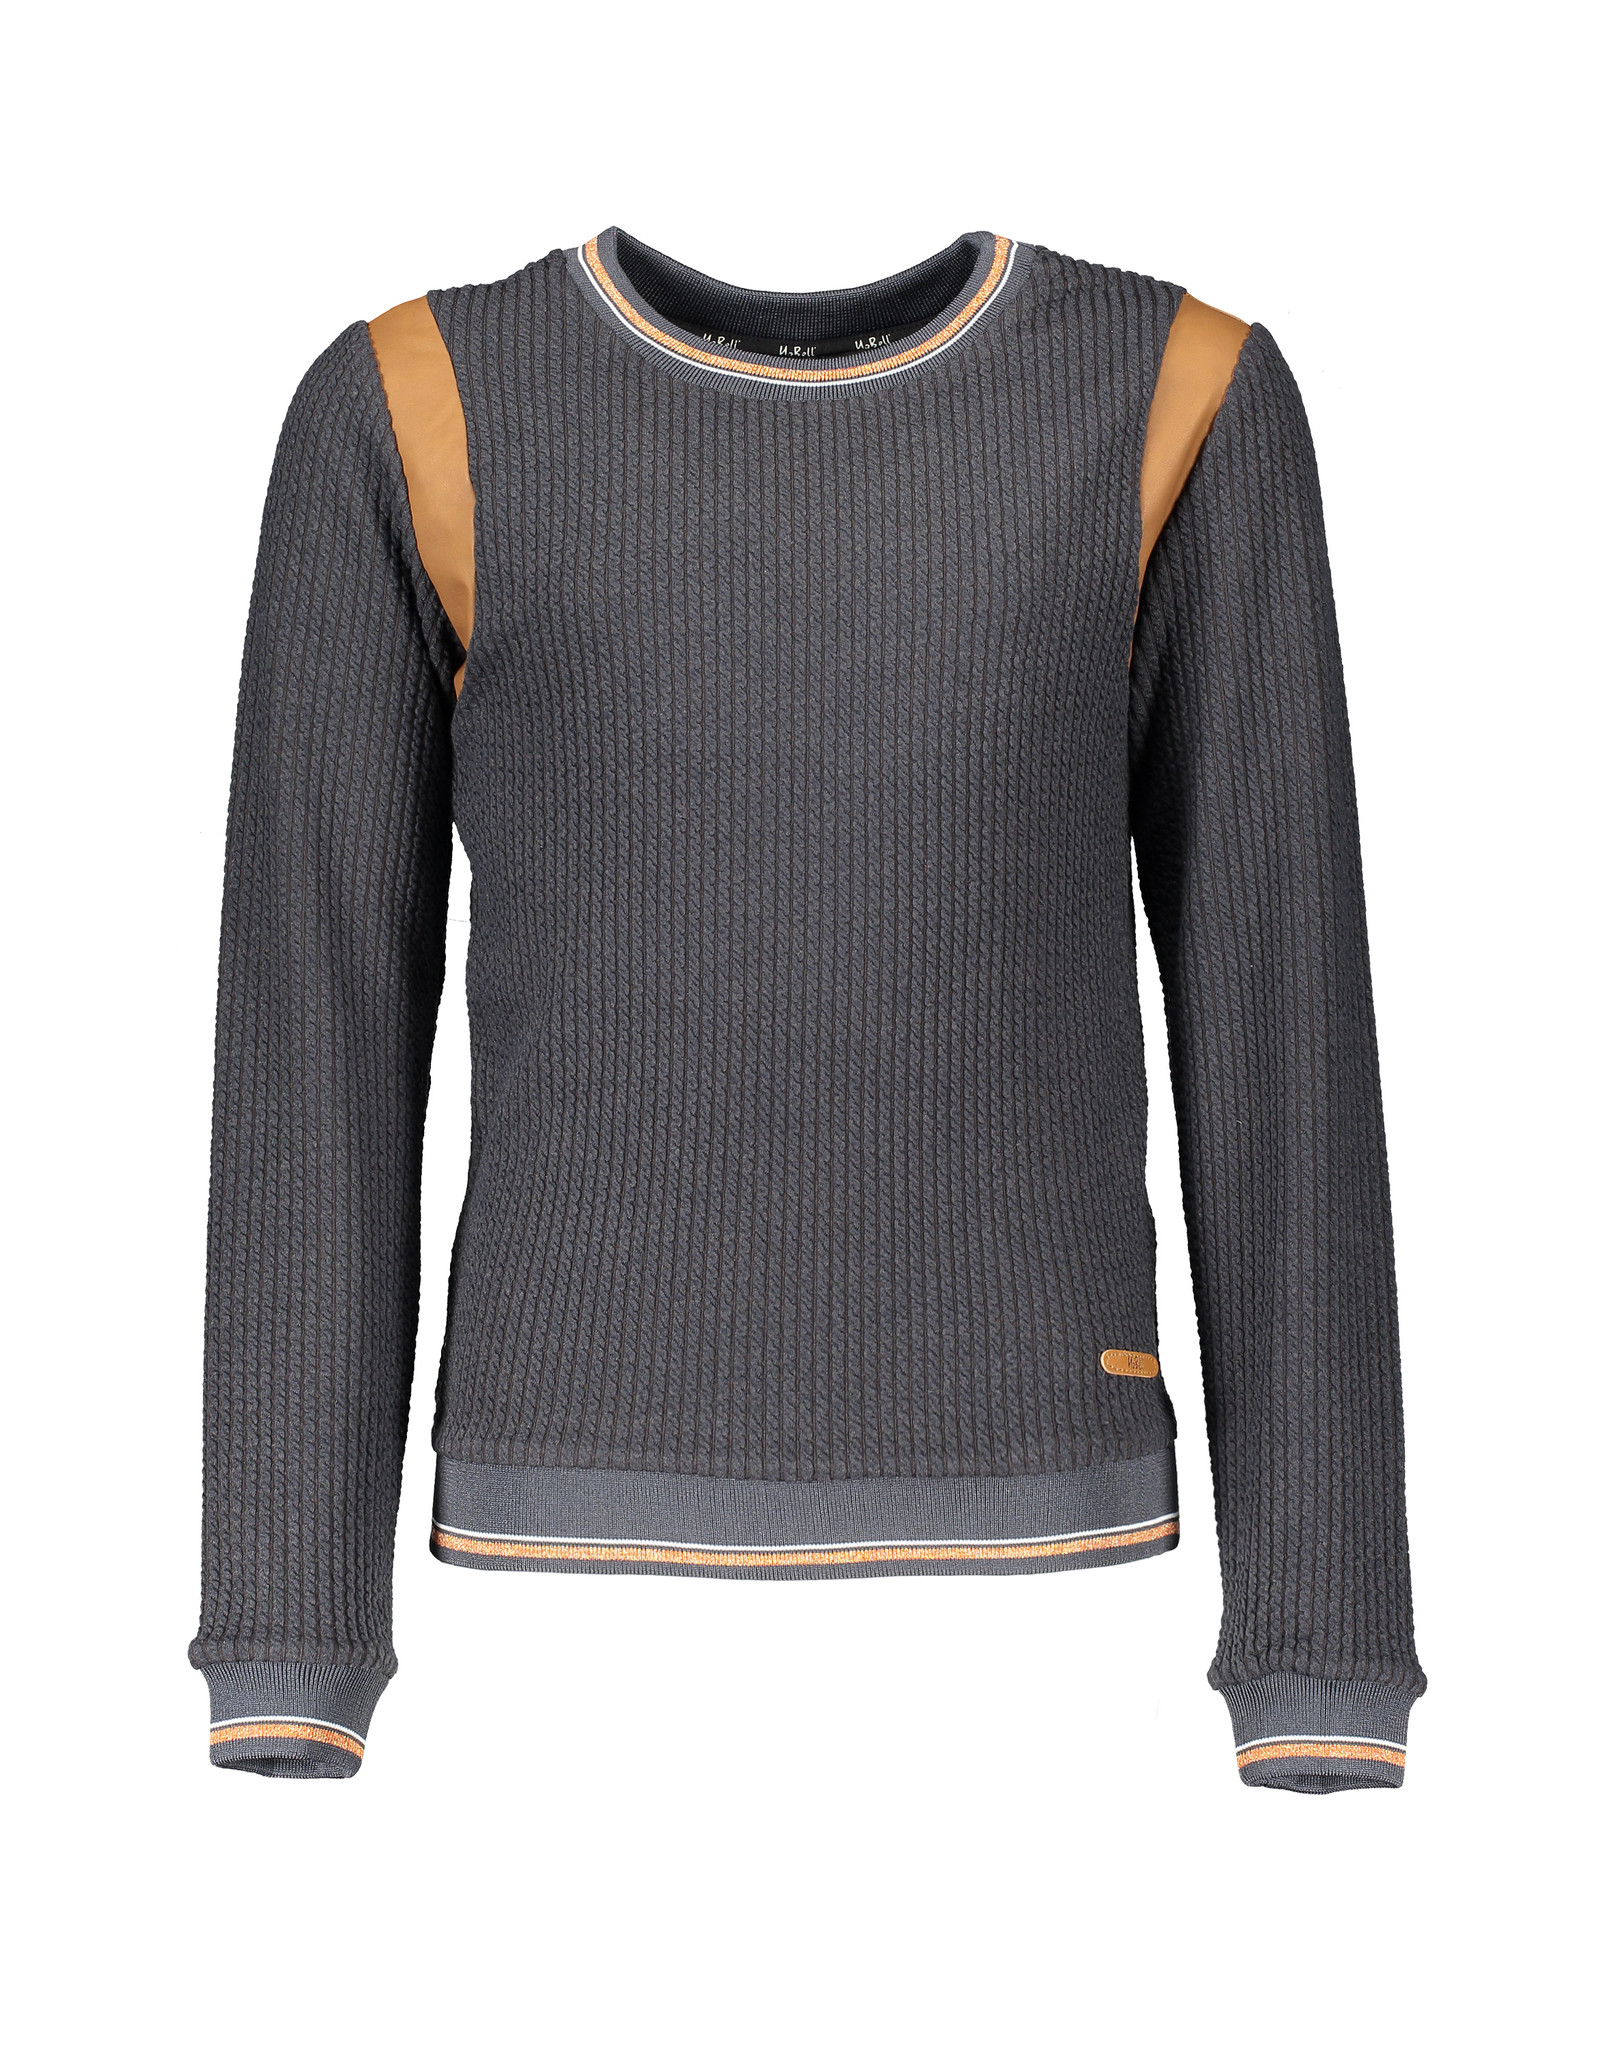 NoBell NoBell-Kynu Rib Sweater-Leather Insert-Antracite